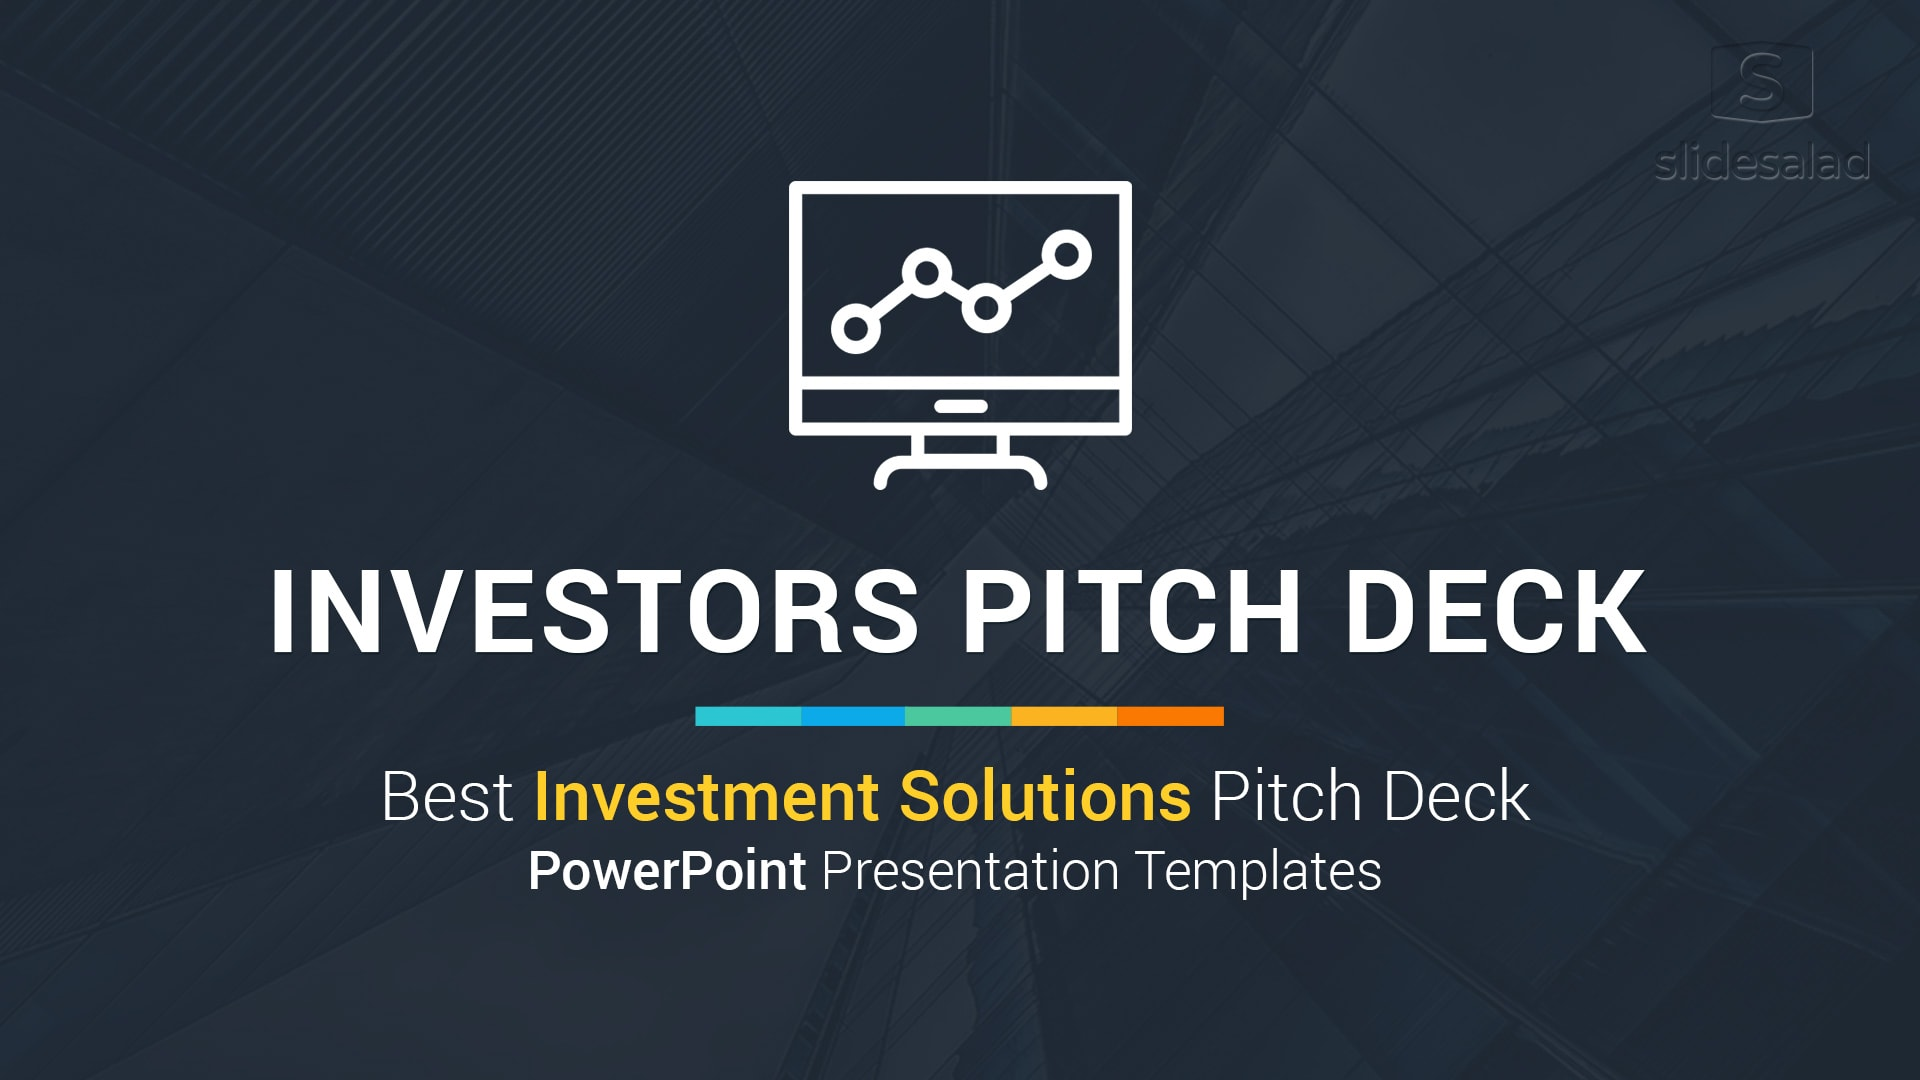 Best Investors Pitch Deck – Top Corporate Investment Pitch Deck Templates Available Online